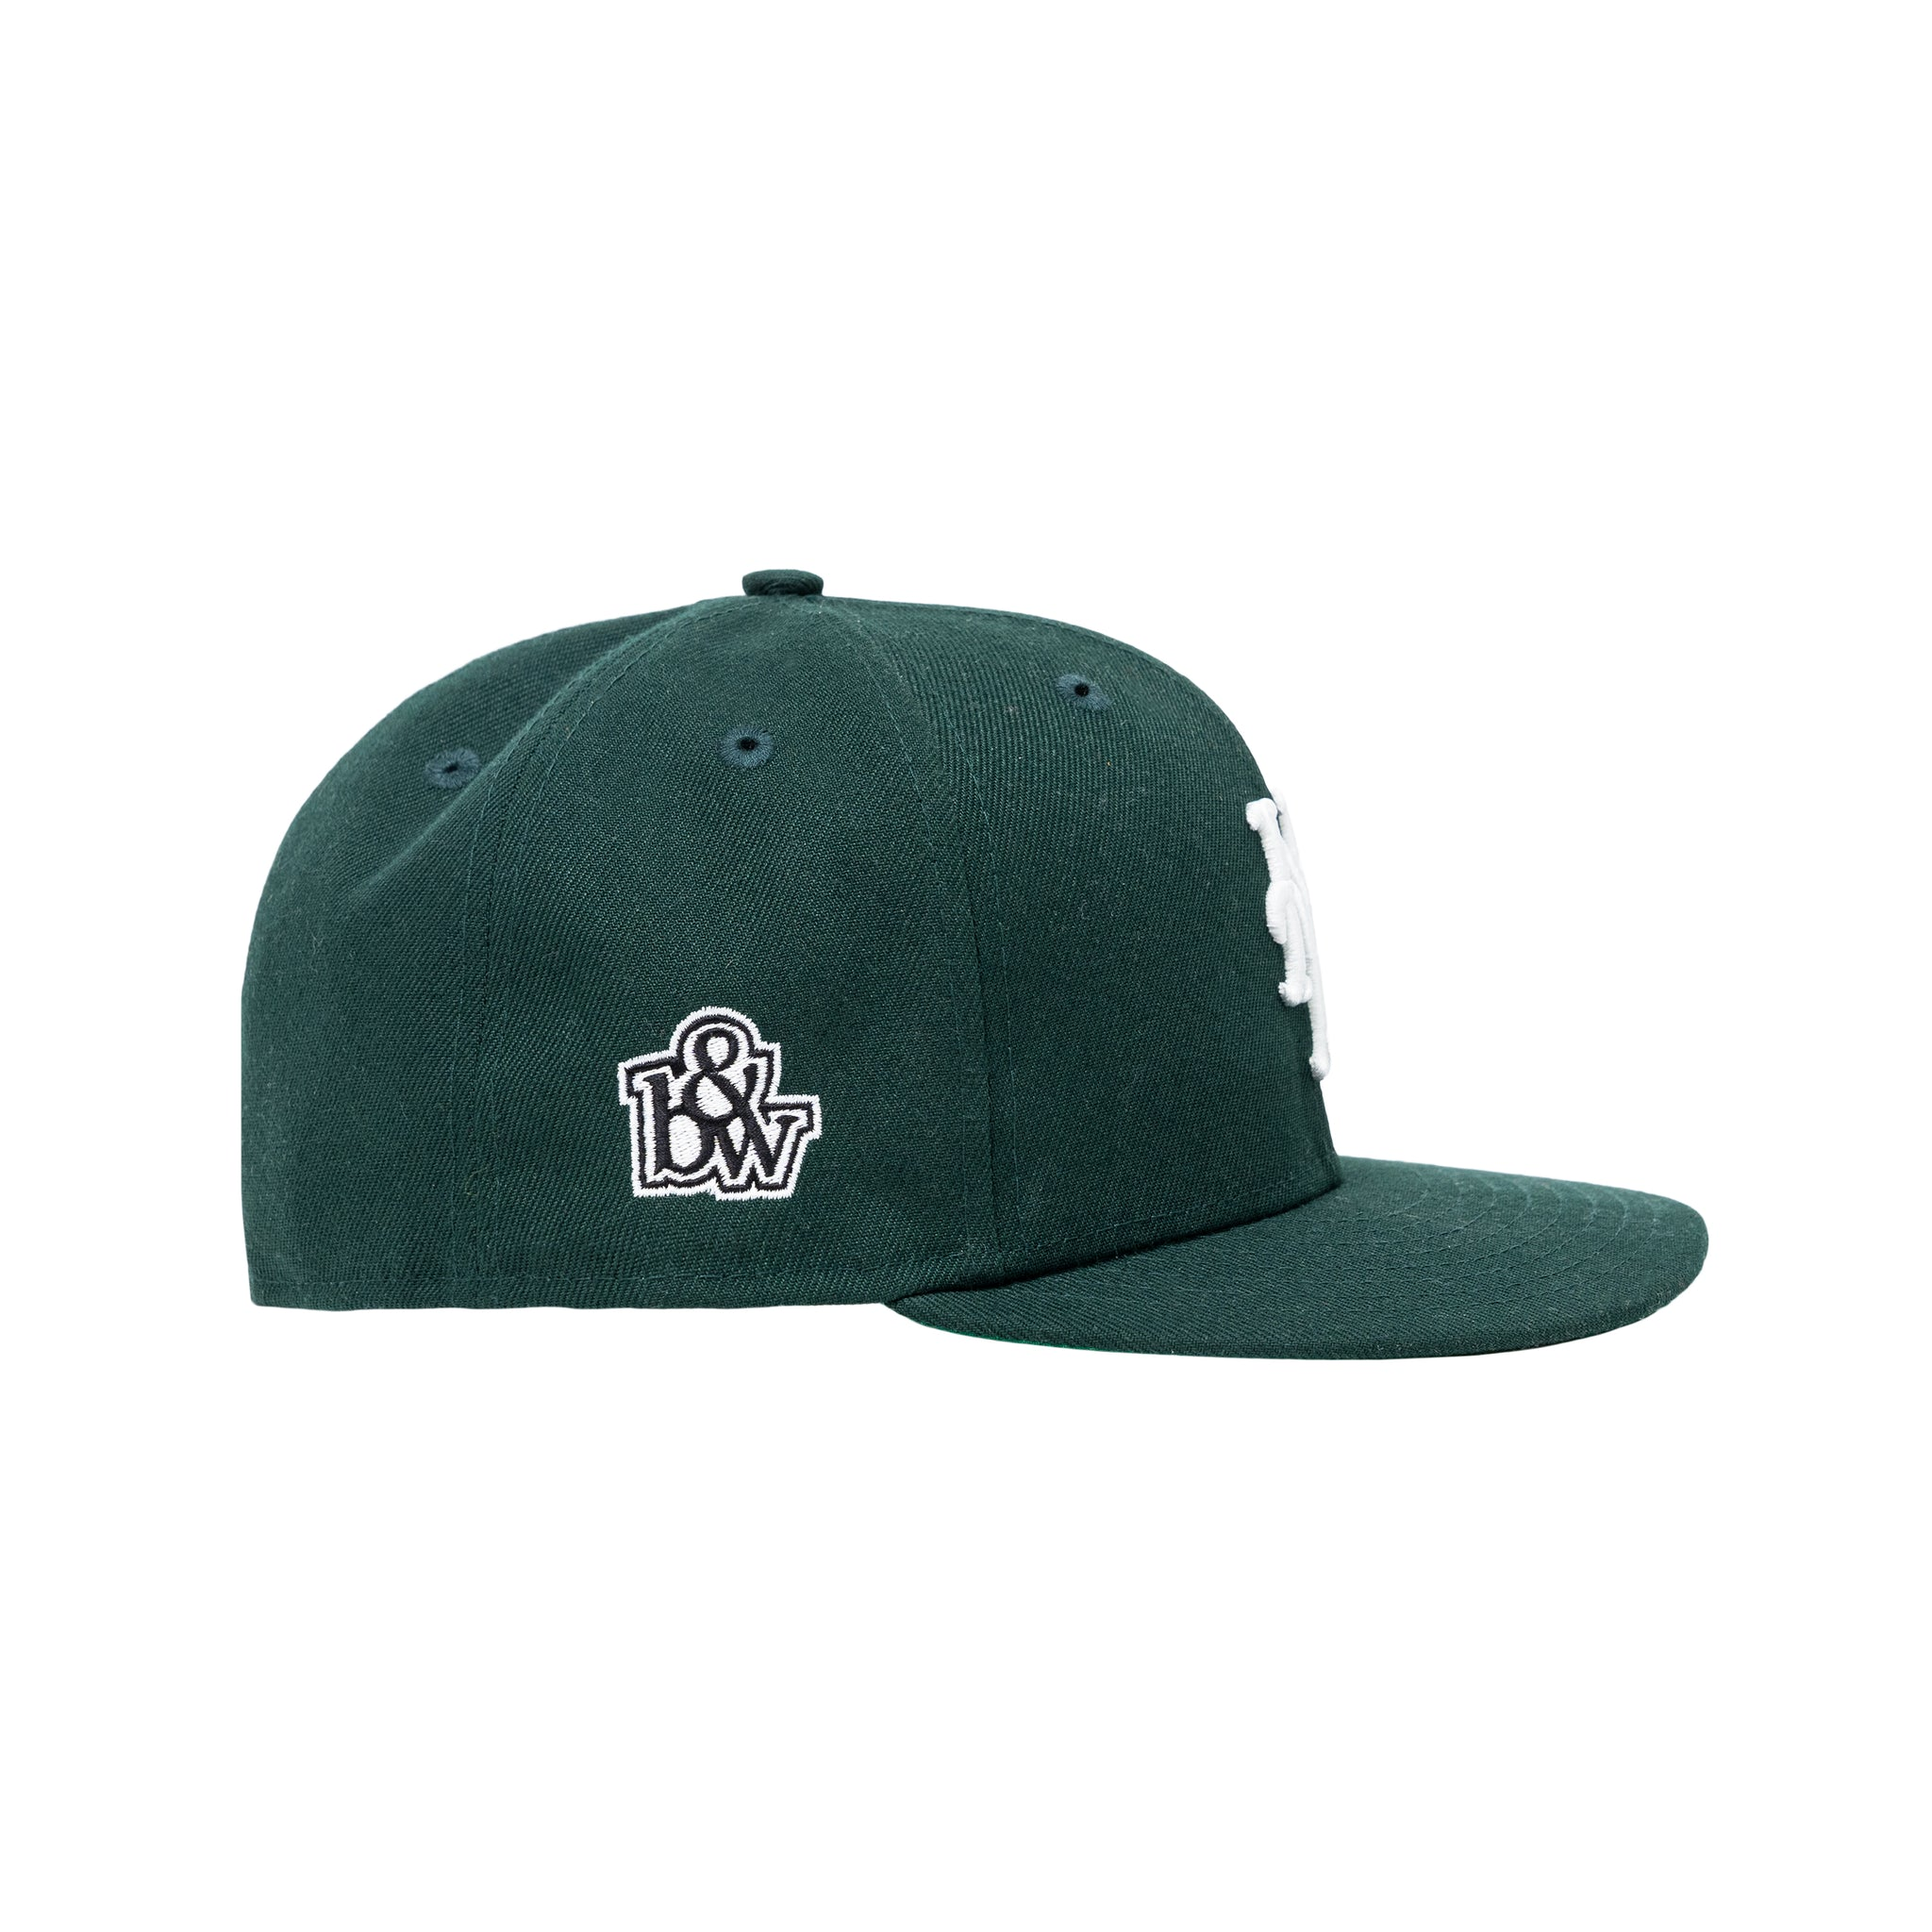 b&w x New Era for The New York Mets, Forest Green